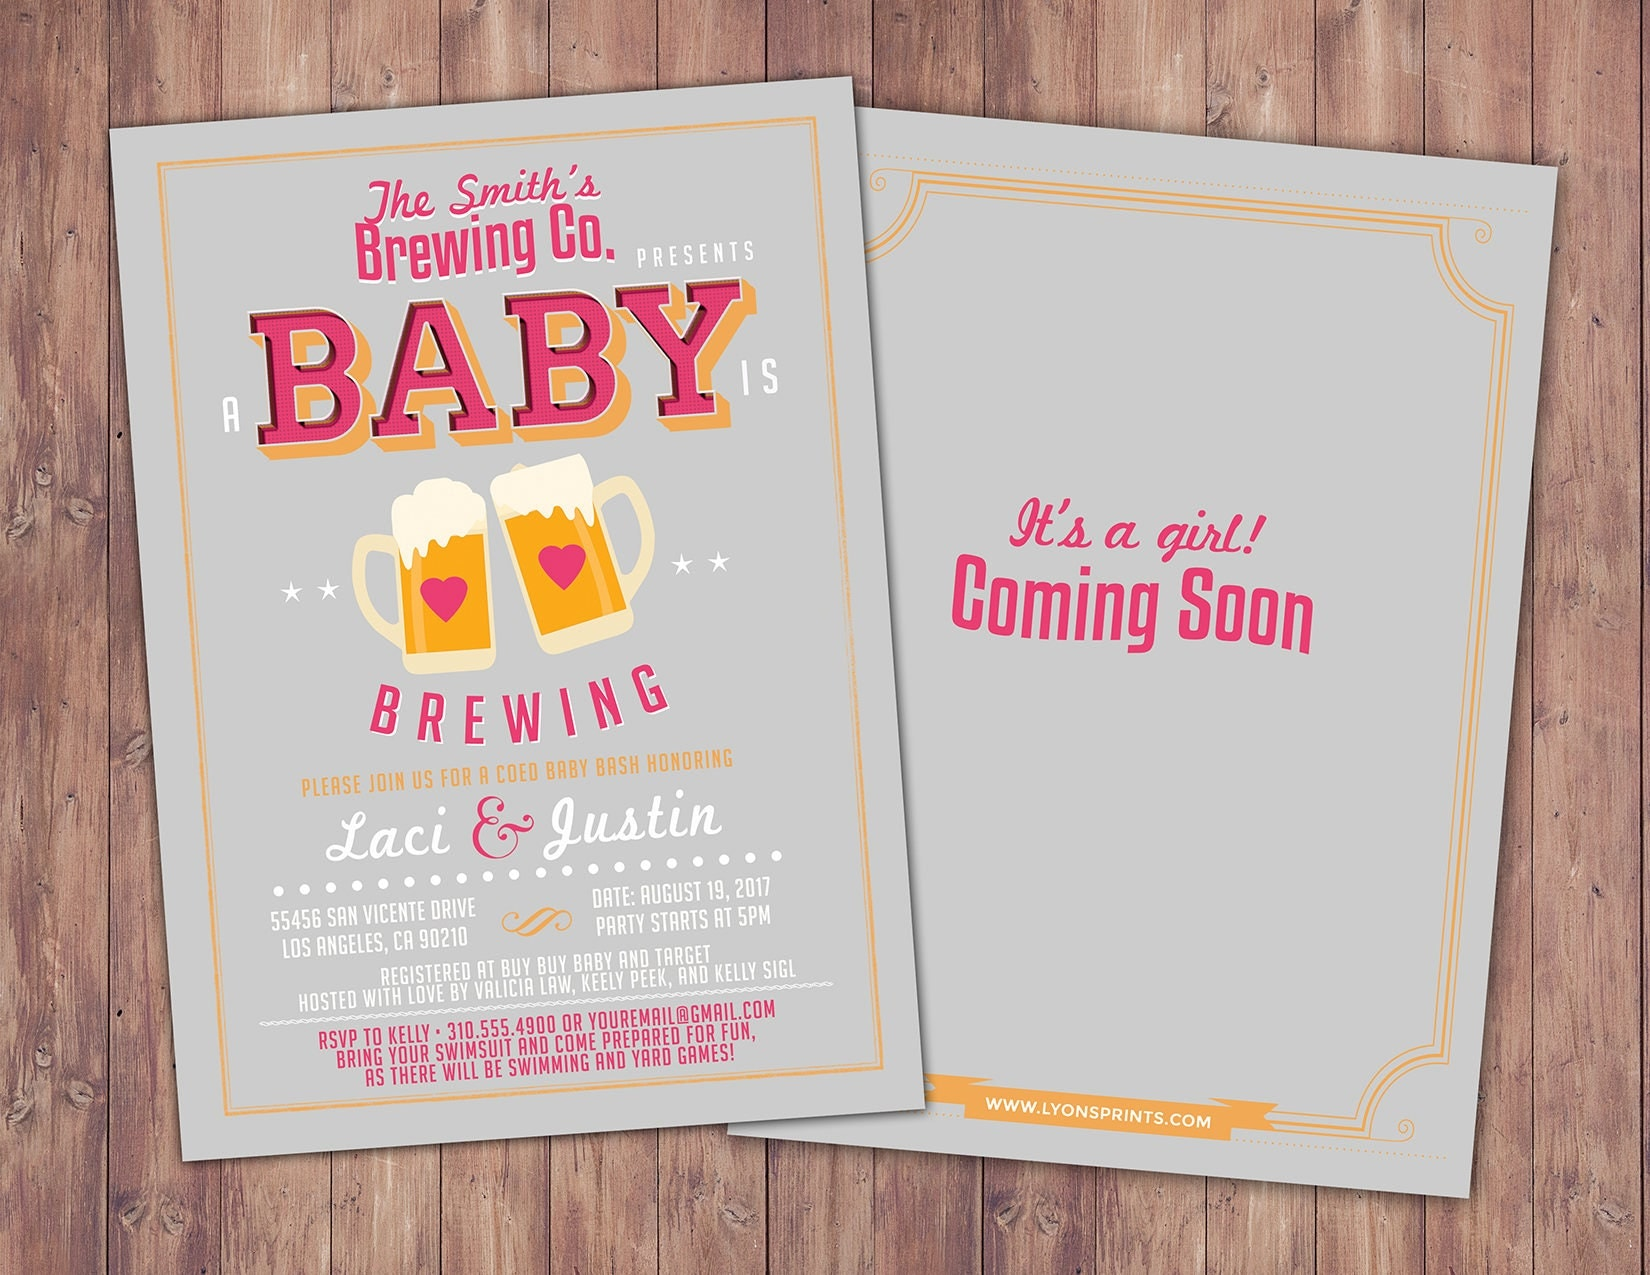 Baby is brewing Coed baby shower invitation Beer baby shower